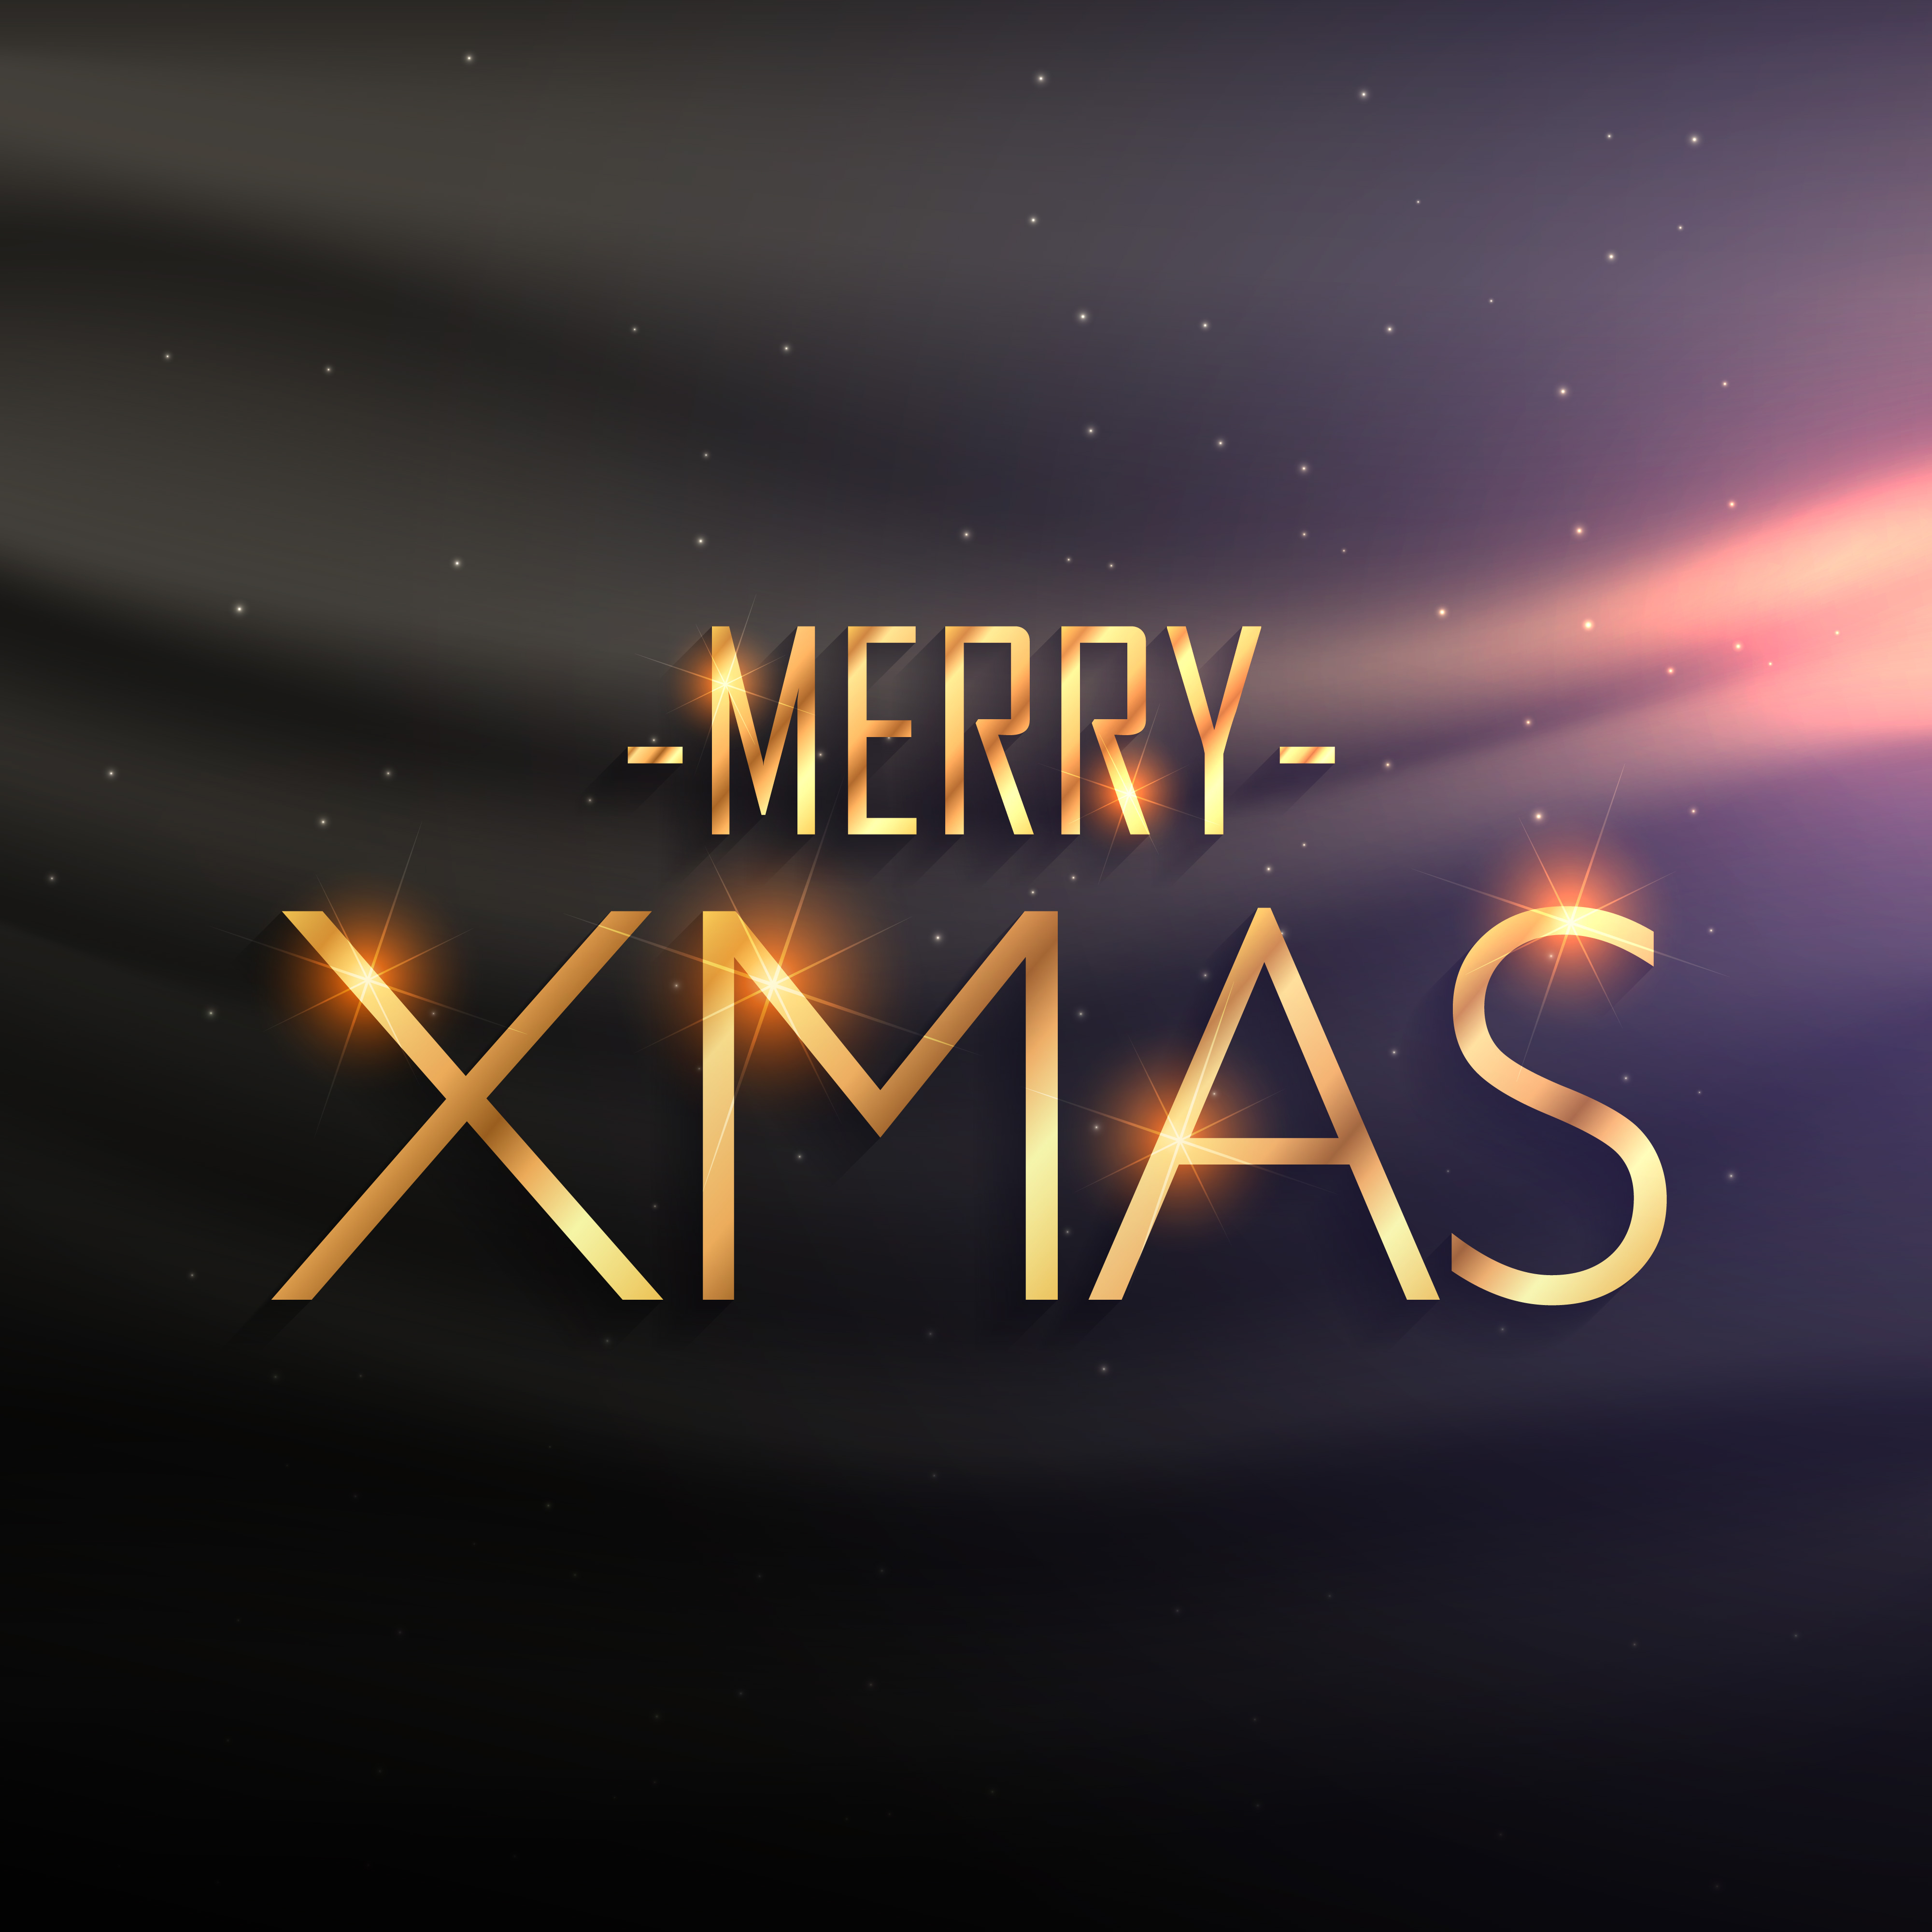 Golden Merry Xmas Lettering On Black Silk Background